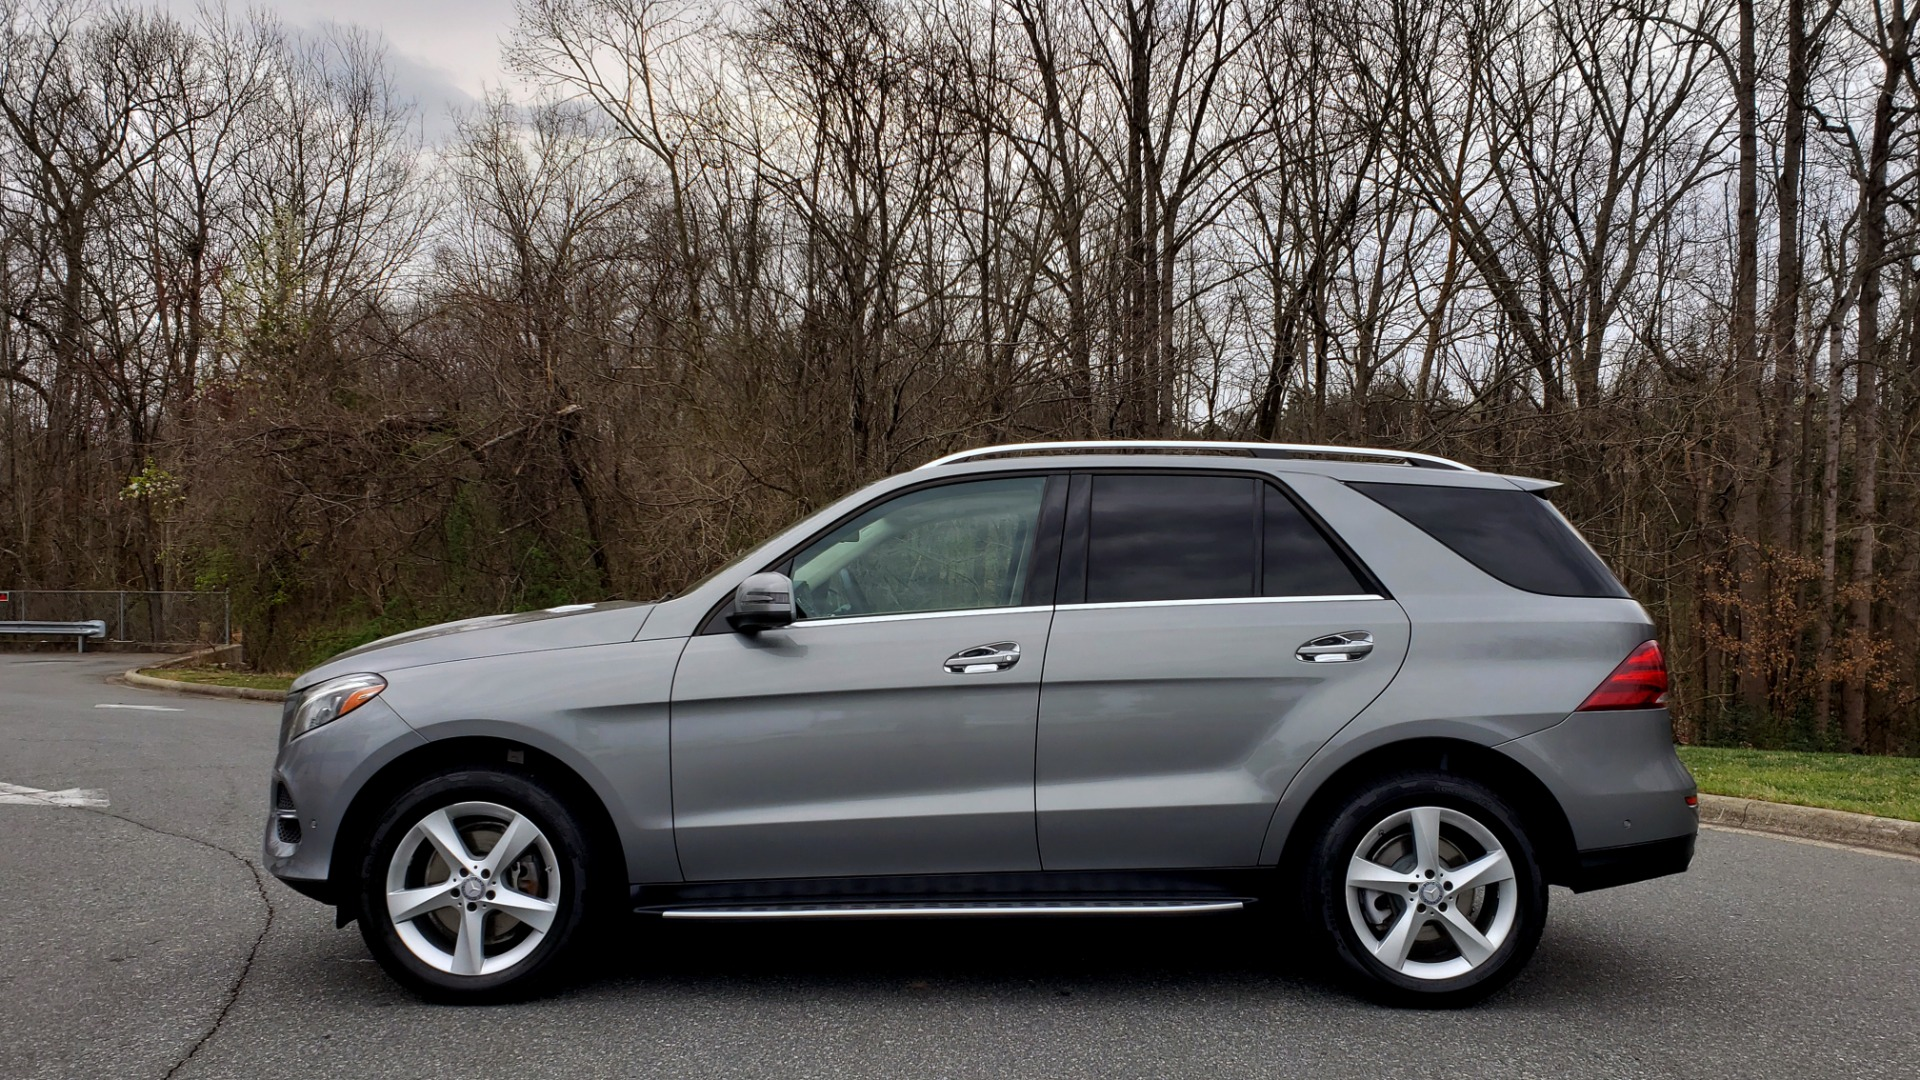 Used 2016 Mercedes-Benz GLE 350 4MATIC / PREMIUM / LIGHTING / NAV / SUNROOF / HTD STS / REAR for sale Sold at Formula Imports in Charlotte NC 28227 2